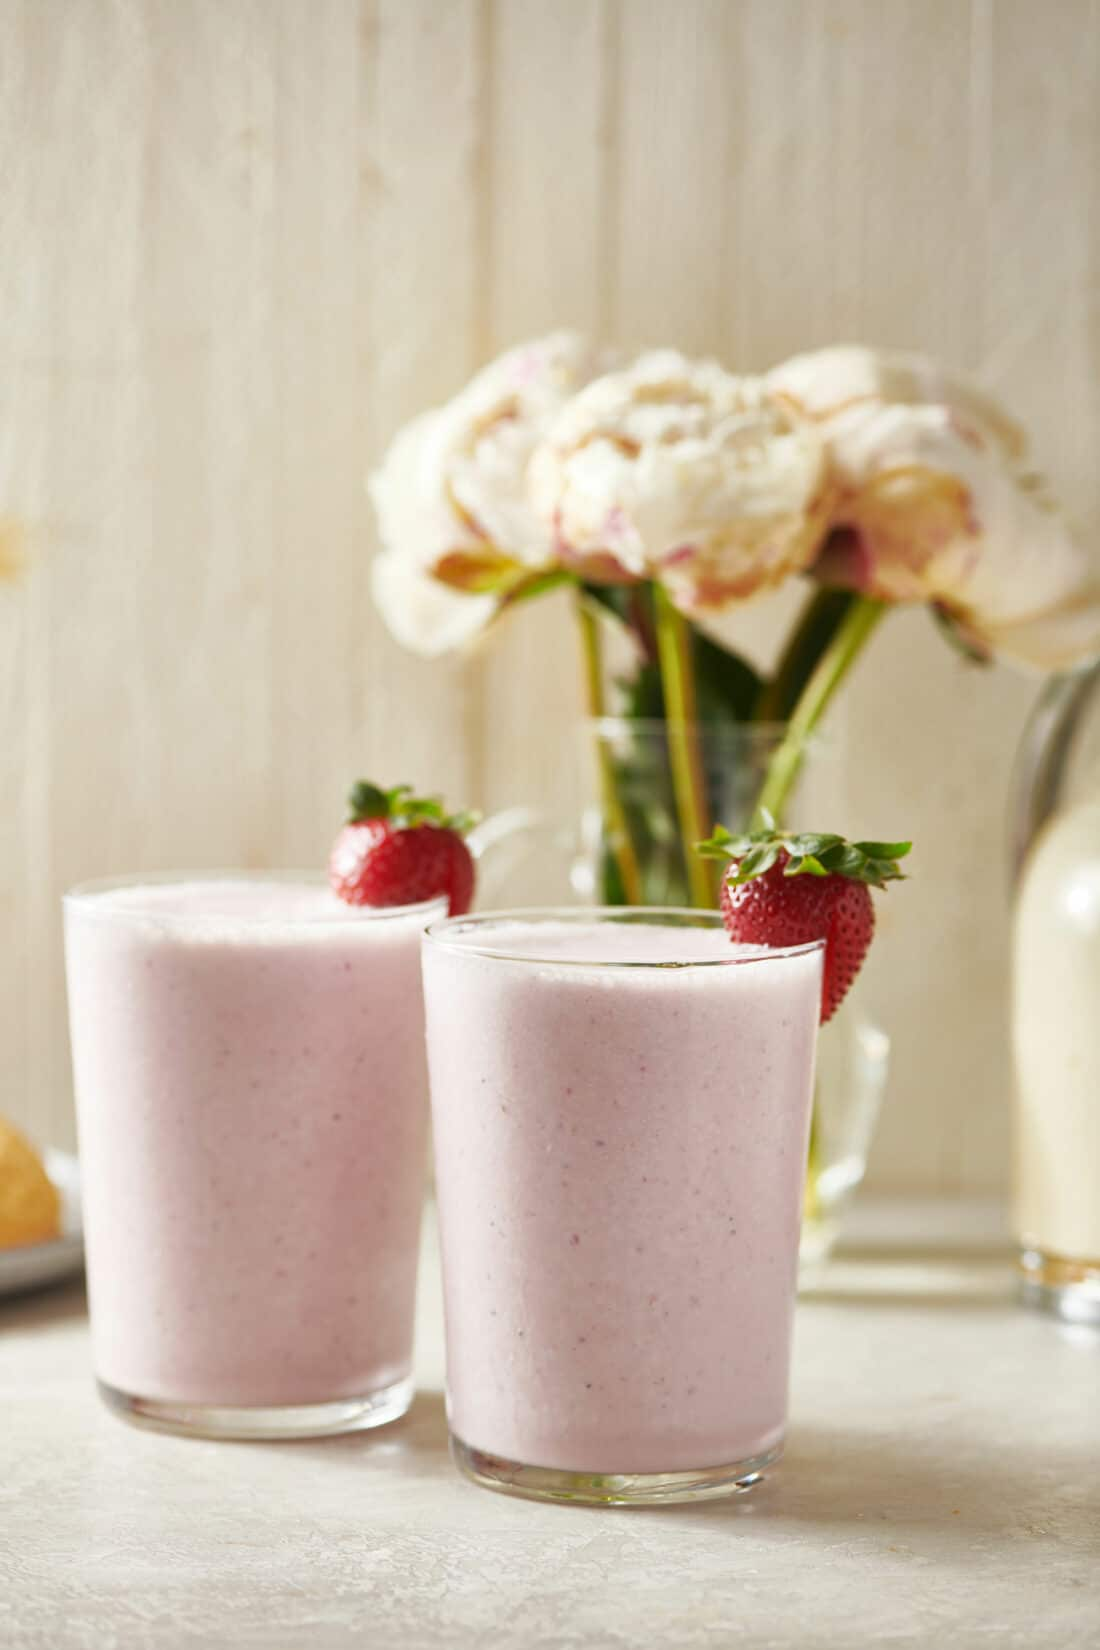 How to Make a Strawberry Milkshake